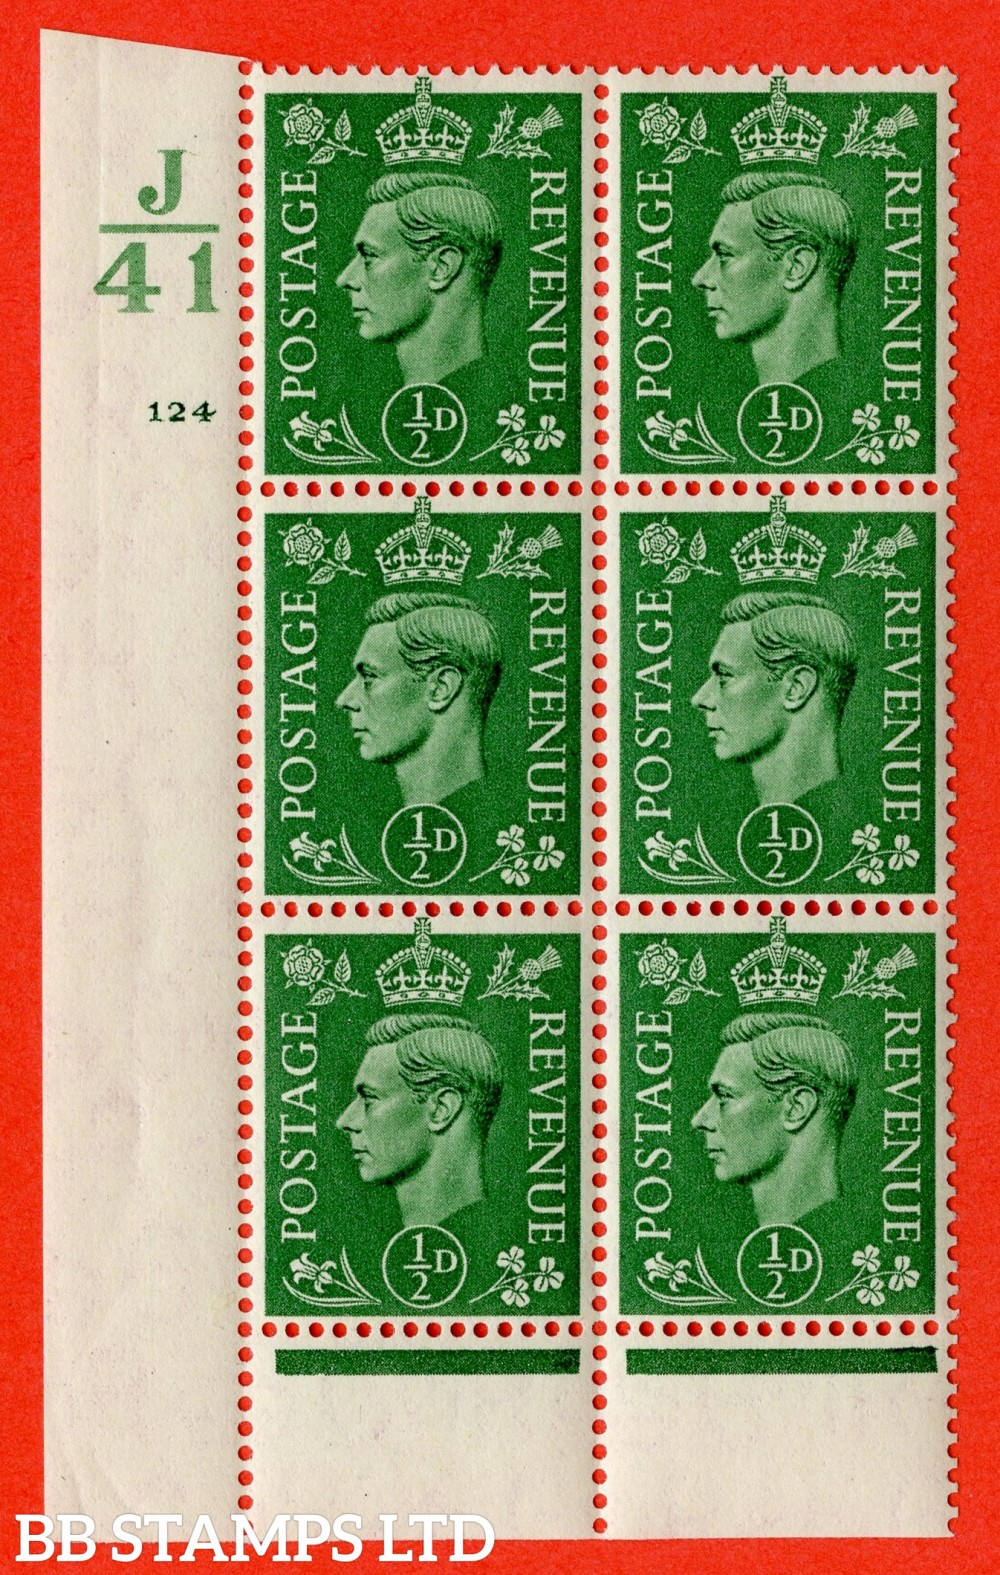 "SG. 485. Q2. ½d Pale Green. A very fine lightly mounted mint "" Control J41 cylinder 124 no dot "" block of 6 with perf type 6 I/P with marginal rule."